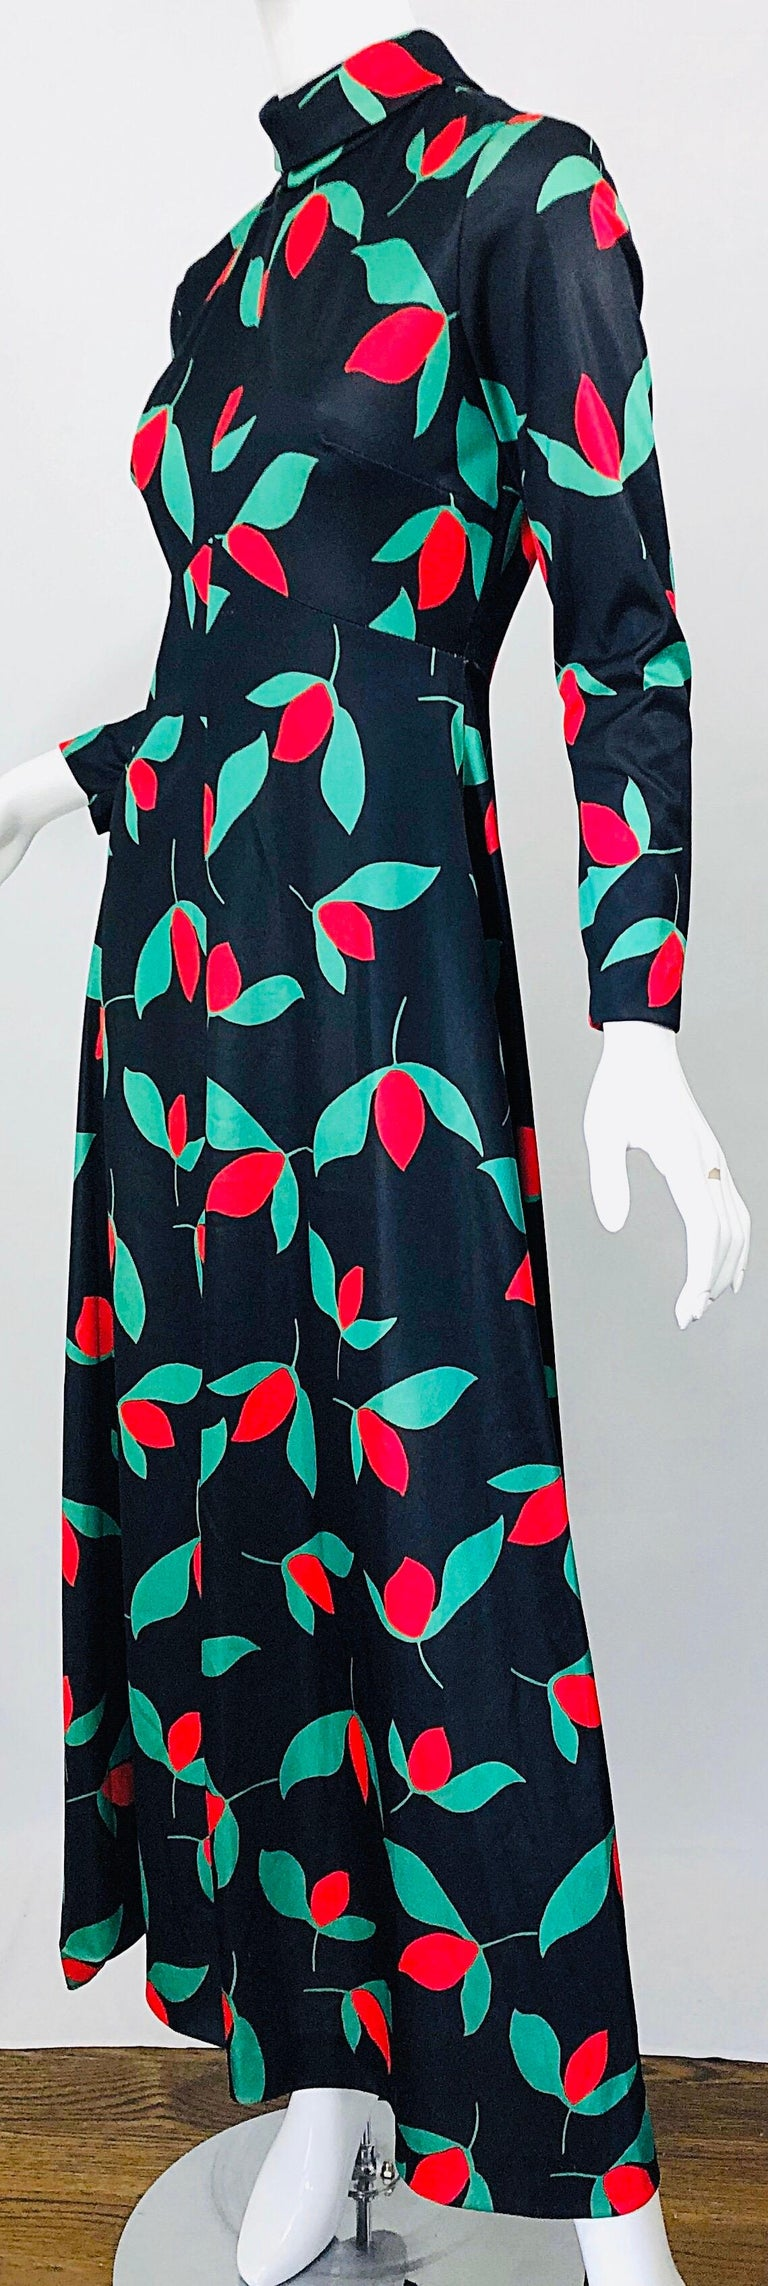 1970s Emilio Borghese Tulip Print Black + Green + Red Vintage 70s Maxi Dress For Sale 8